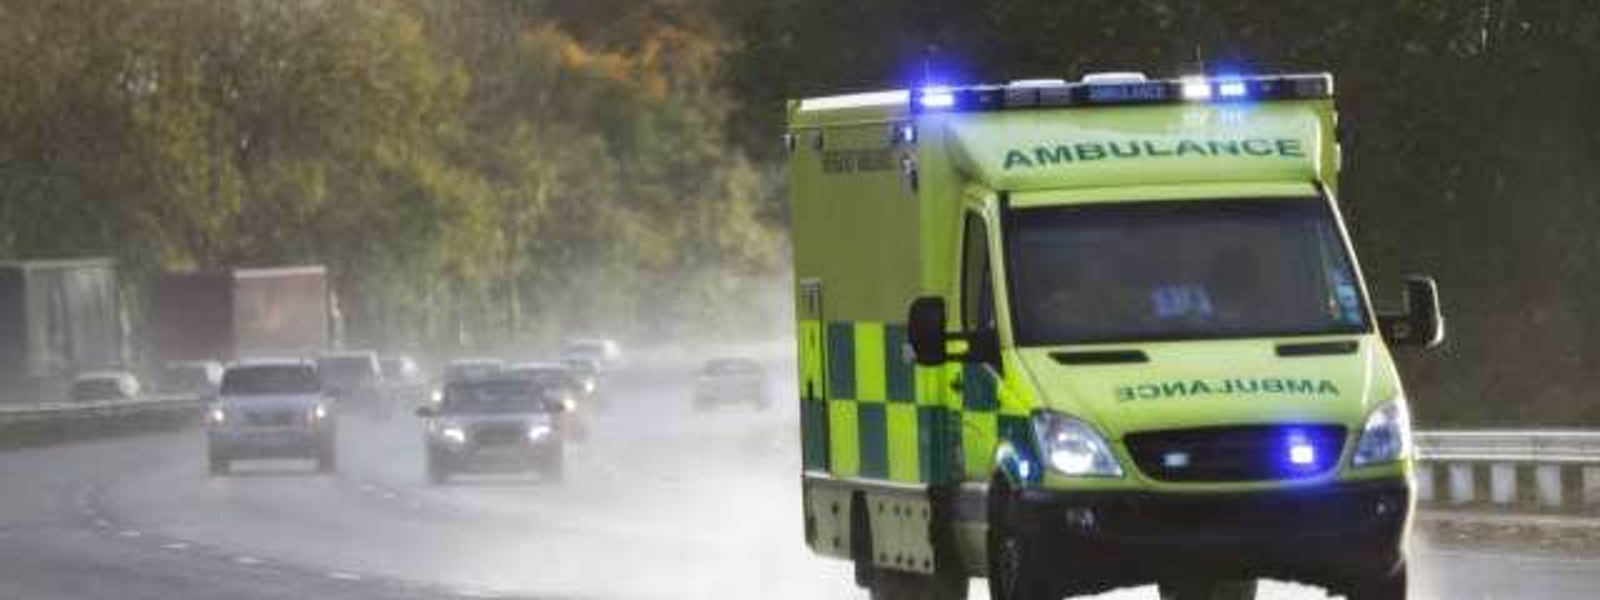 Road Rules You Should Know When Emergency Vehicles Pass!